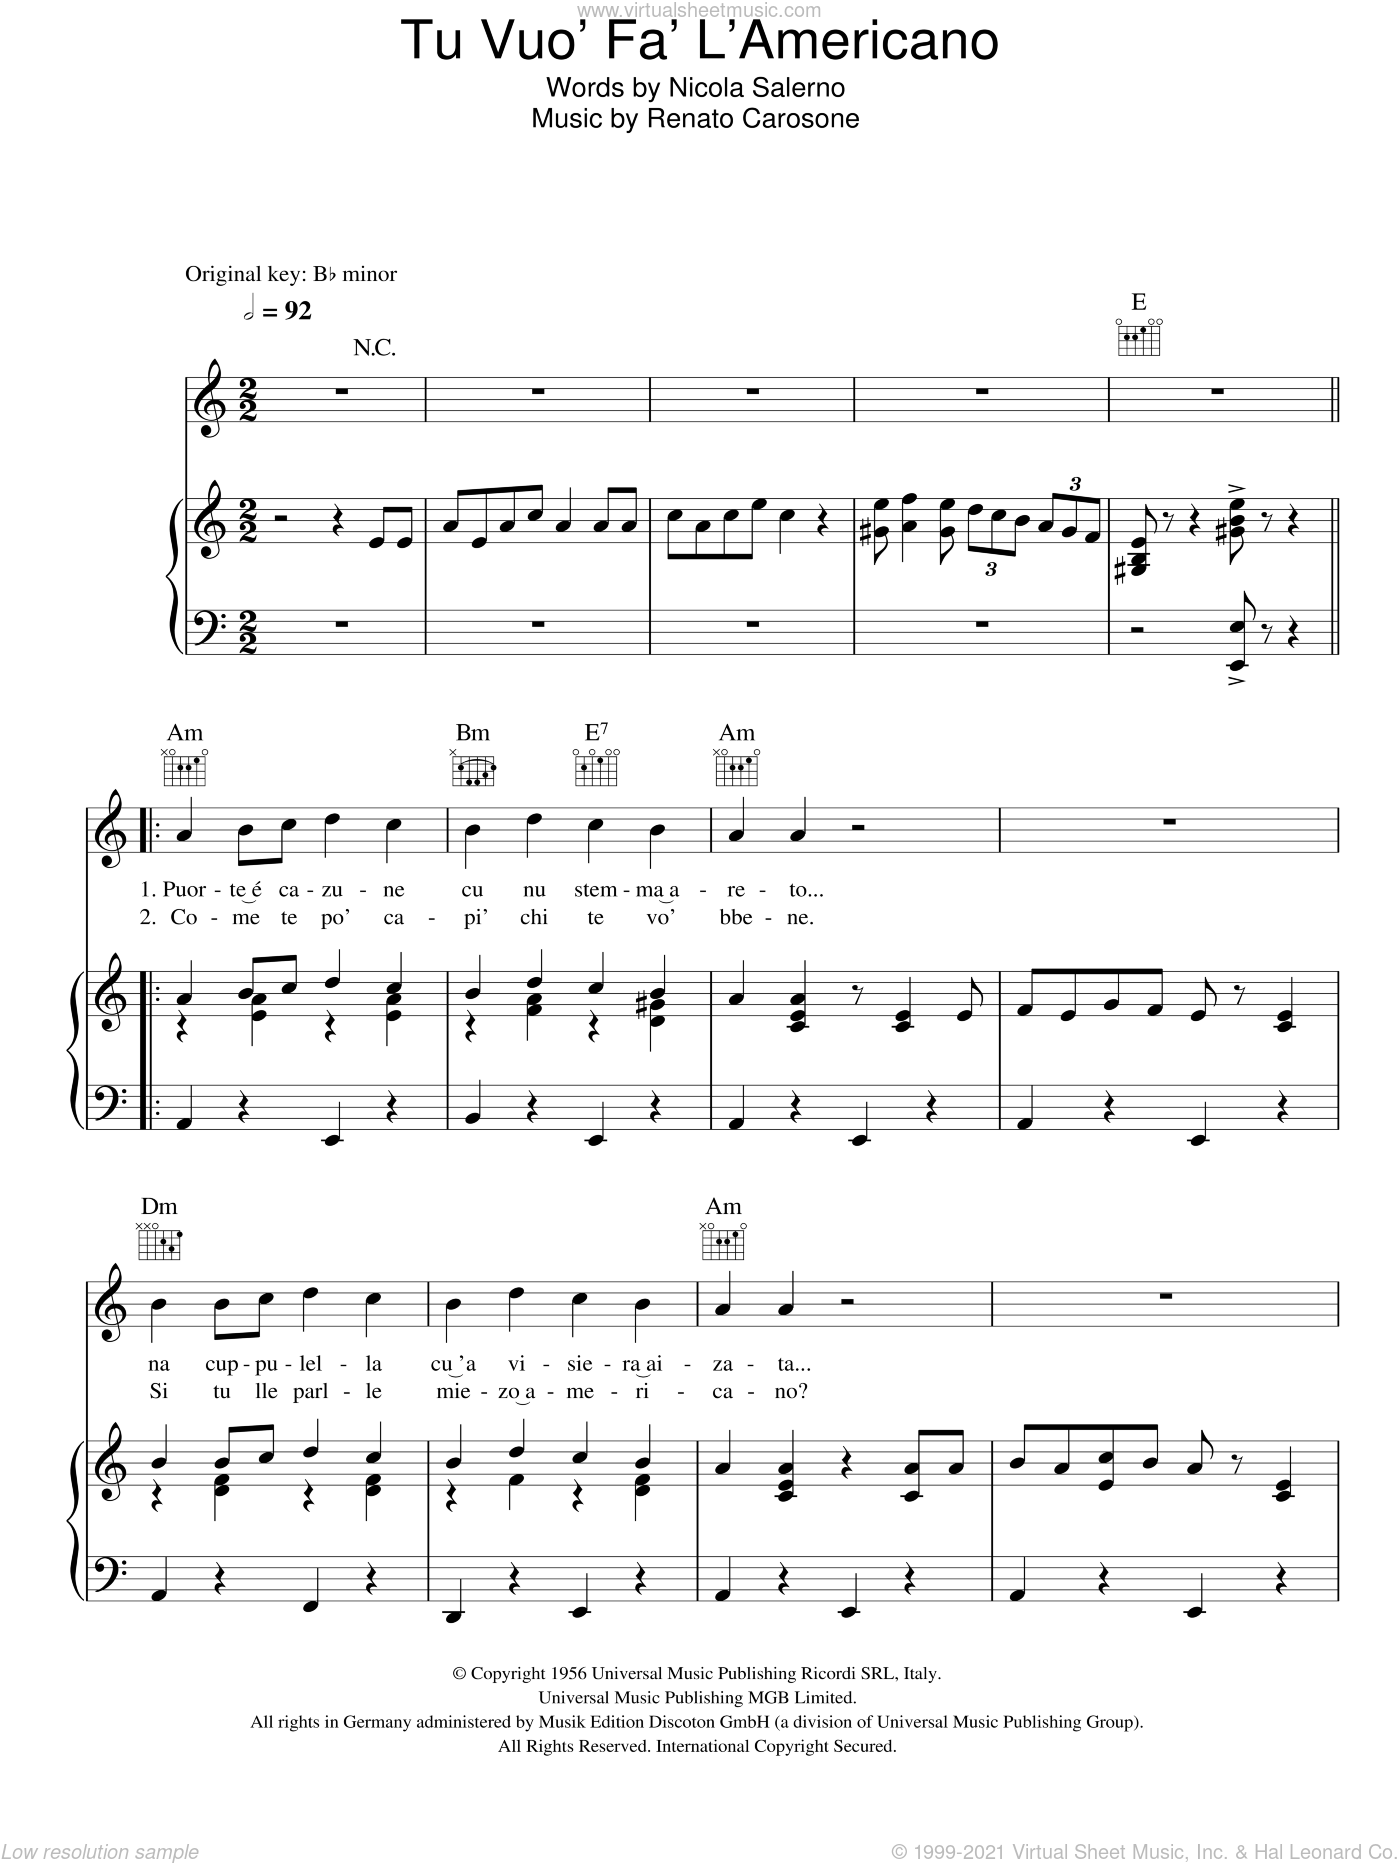 Tu Vuo Fa L'Americano sheet music for voice, piano or guitar by Nicola Salerno